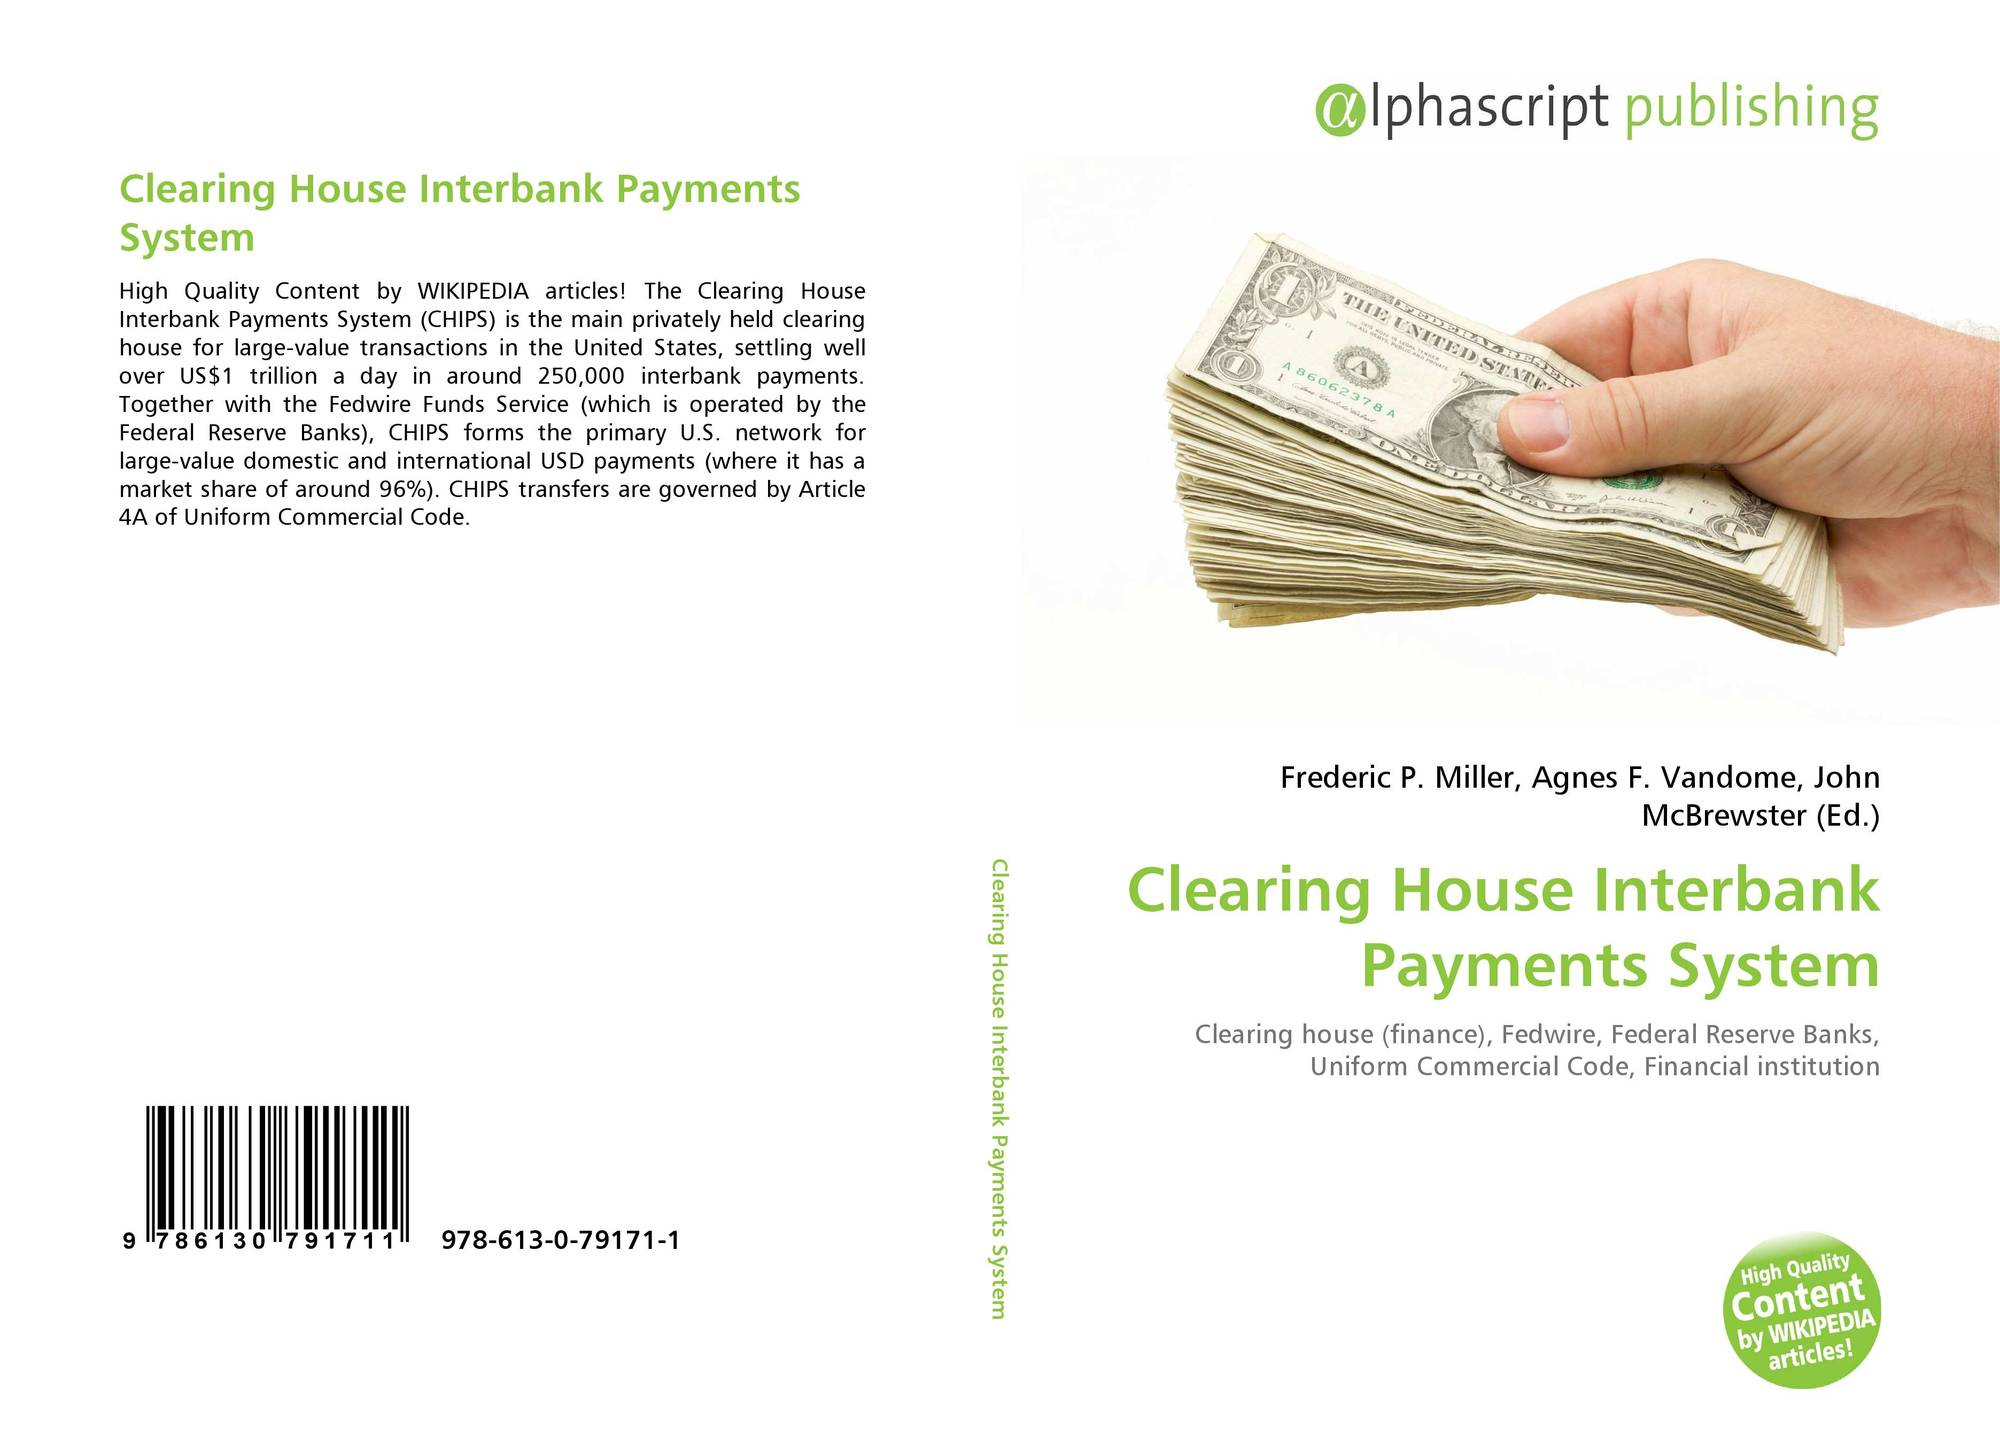 Clearing House Interbank Payments System, 978-613-0-79171-1